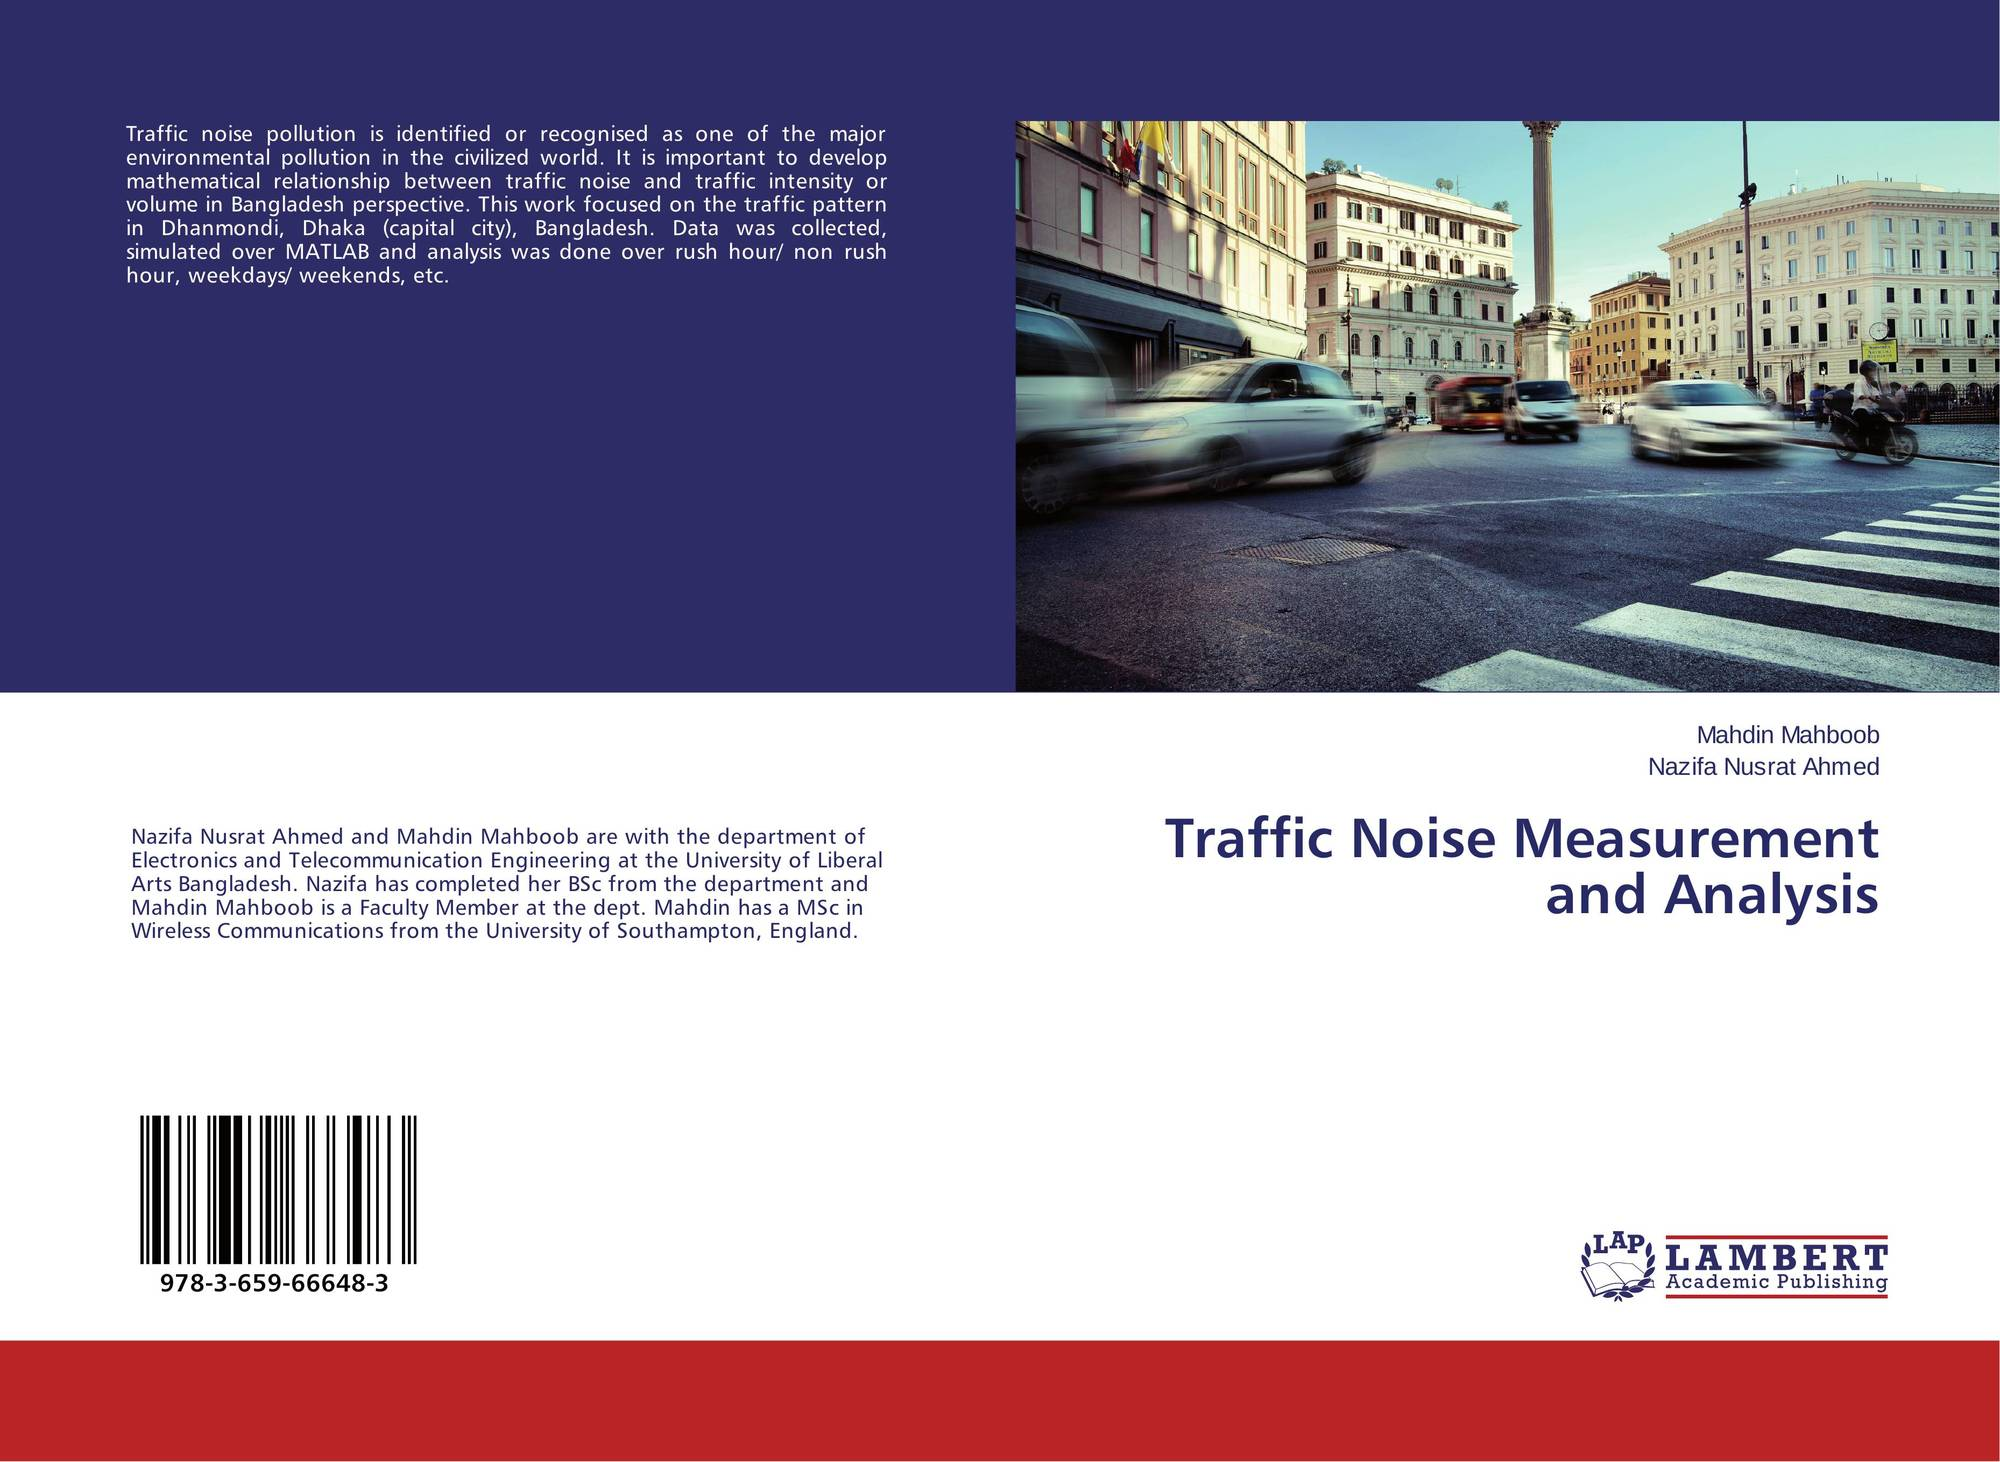 Traffic Noise Measurement and Analysis, 978-3-659-66648-3